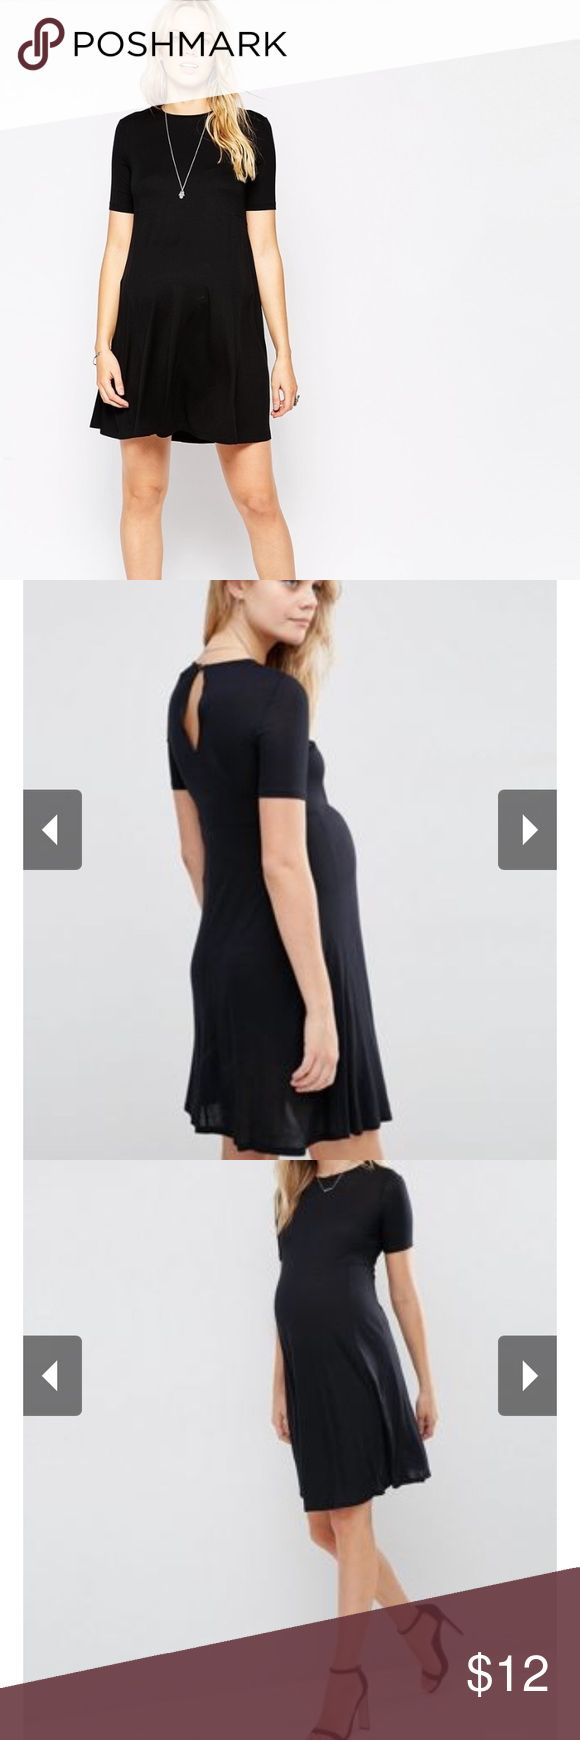 Asos maternity NWT a line tee shirt dress Super lightweight a-line maternity dress. Made of 95% viscose/5% elasthane.  (I need to steam this...getting a new steamer this week woo hoo. Would easily fit an asos curve or asos maternity 12-16) ***24 hour price drop in effect ✨🌟💫) ASOS Maternity Dresses Mini